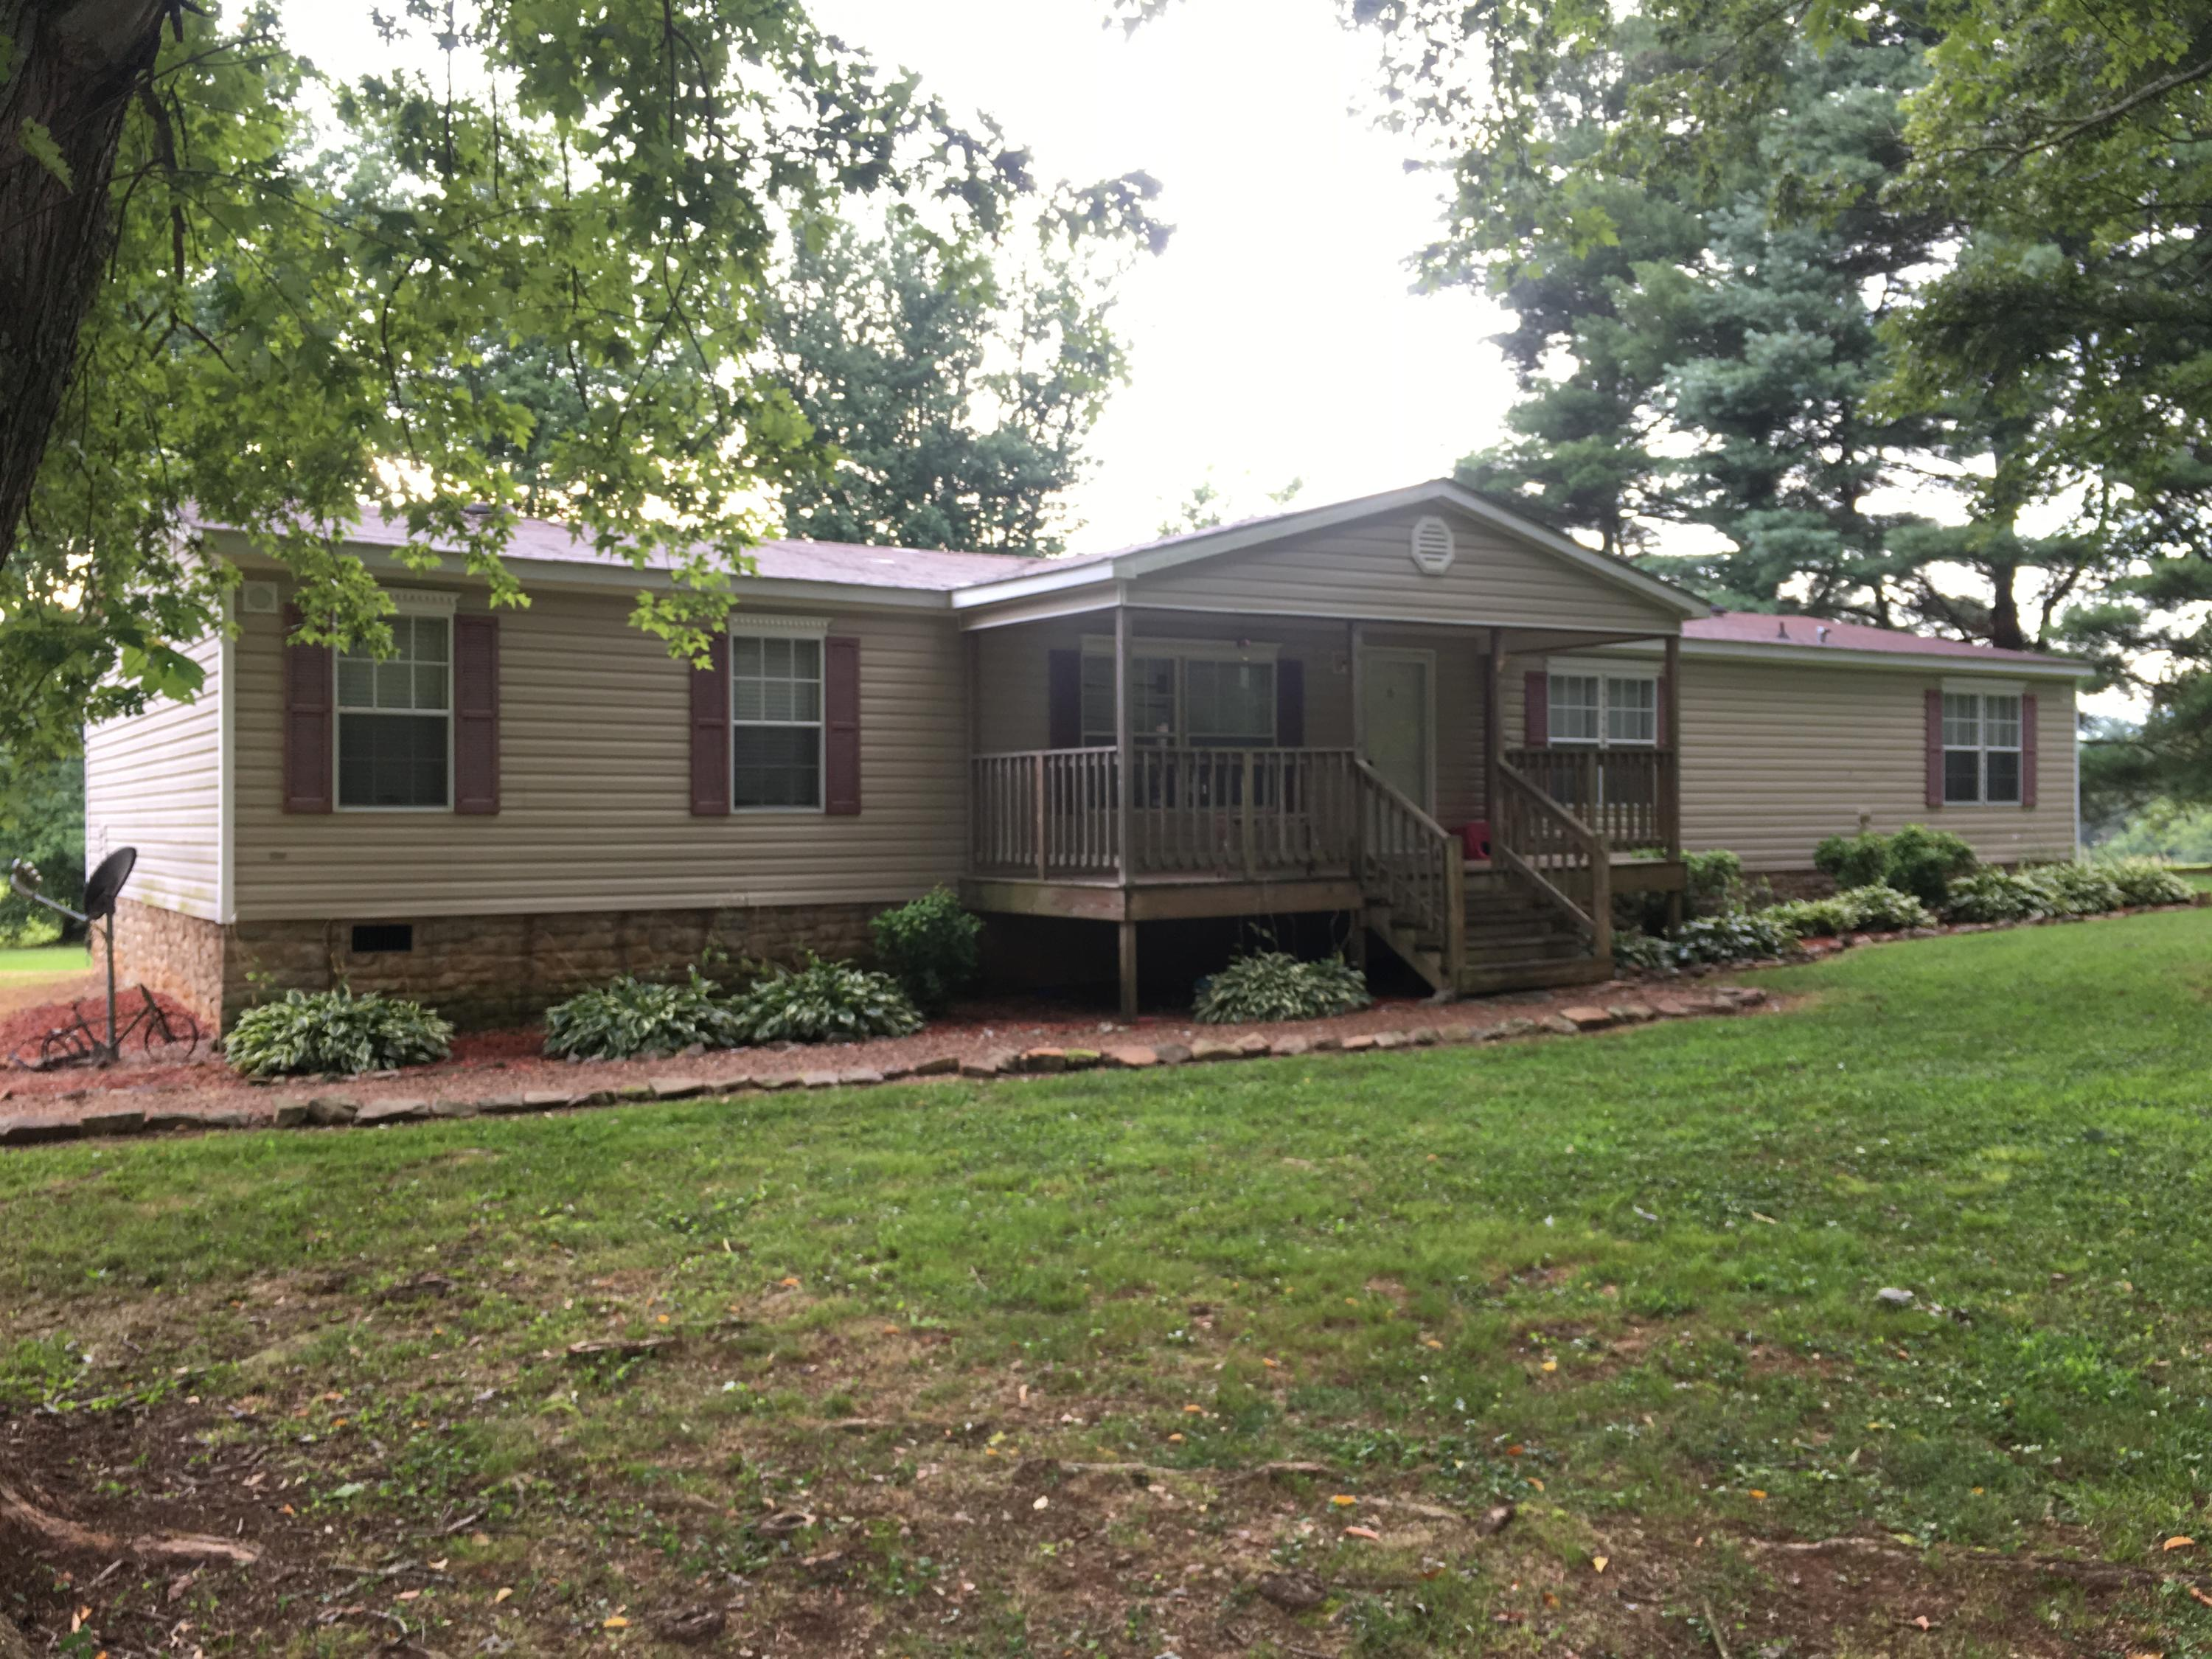 625 Dempsey Rd Rd, Whitwell, Tennessee